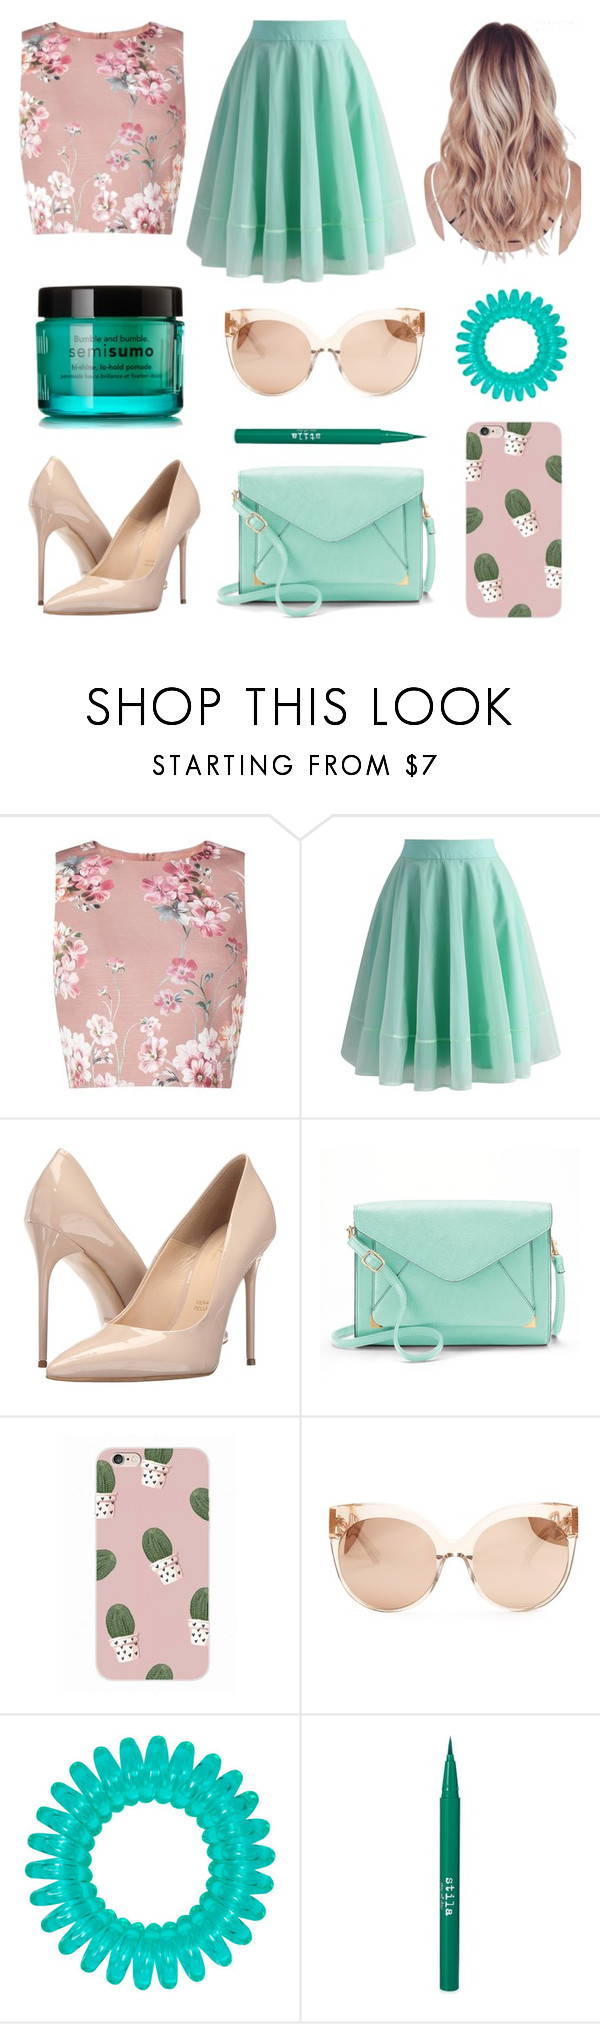 """""""Untitled #82"""" by niniber002 ❤ liked on Polyvore featuring Miss Selfridge, Chicwish, Massimo Matteo, Apt. 9, Linda Farrow, Stila and Bumble and bumble"""